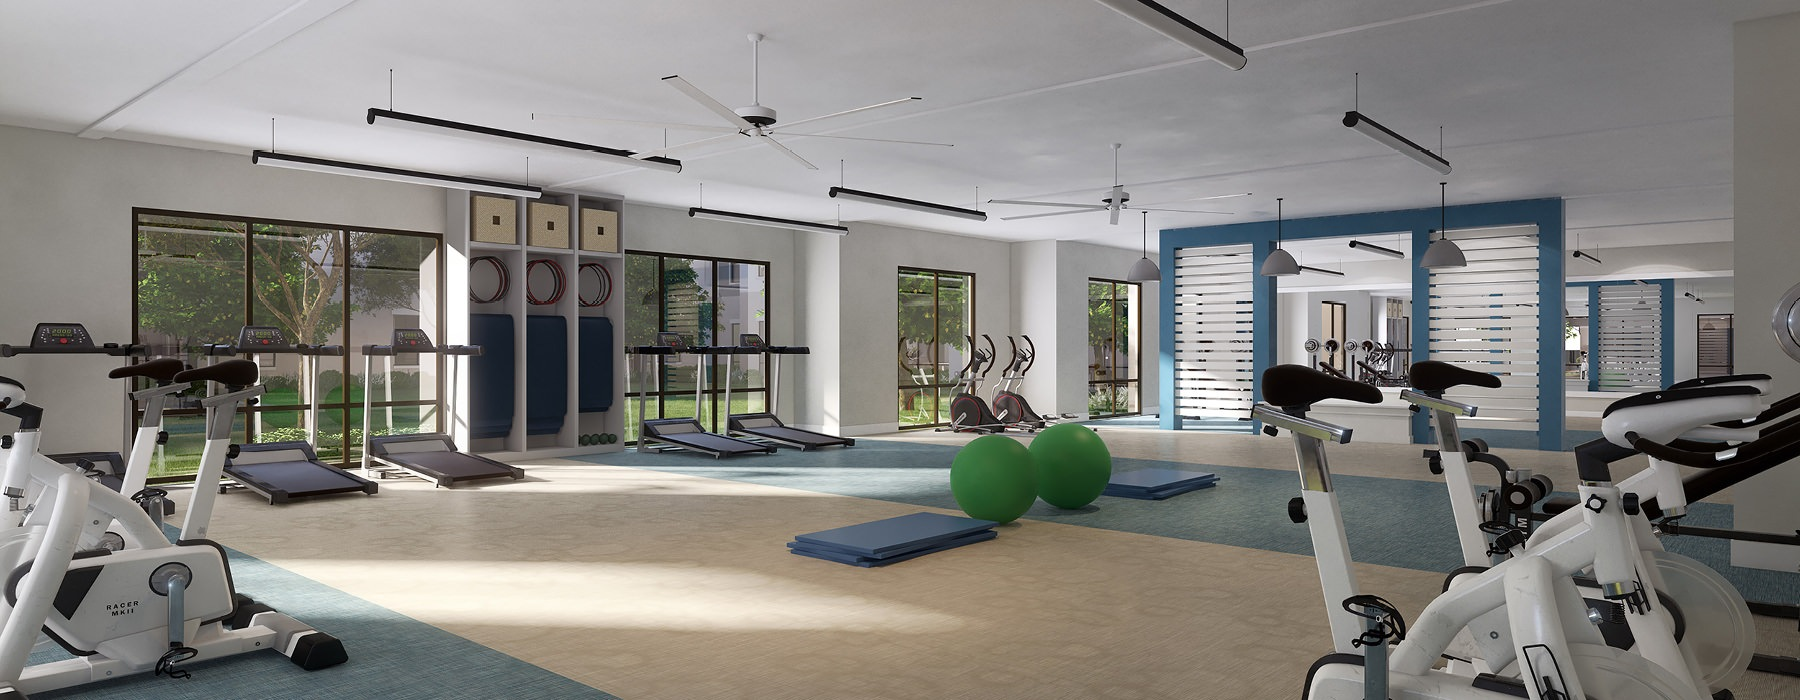 roomy fitness center rendering with large panel windows, ceiling fans and hanging fluorescent lights throughout